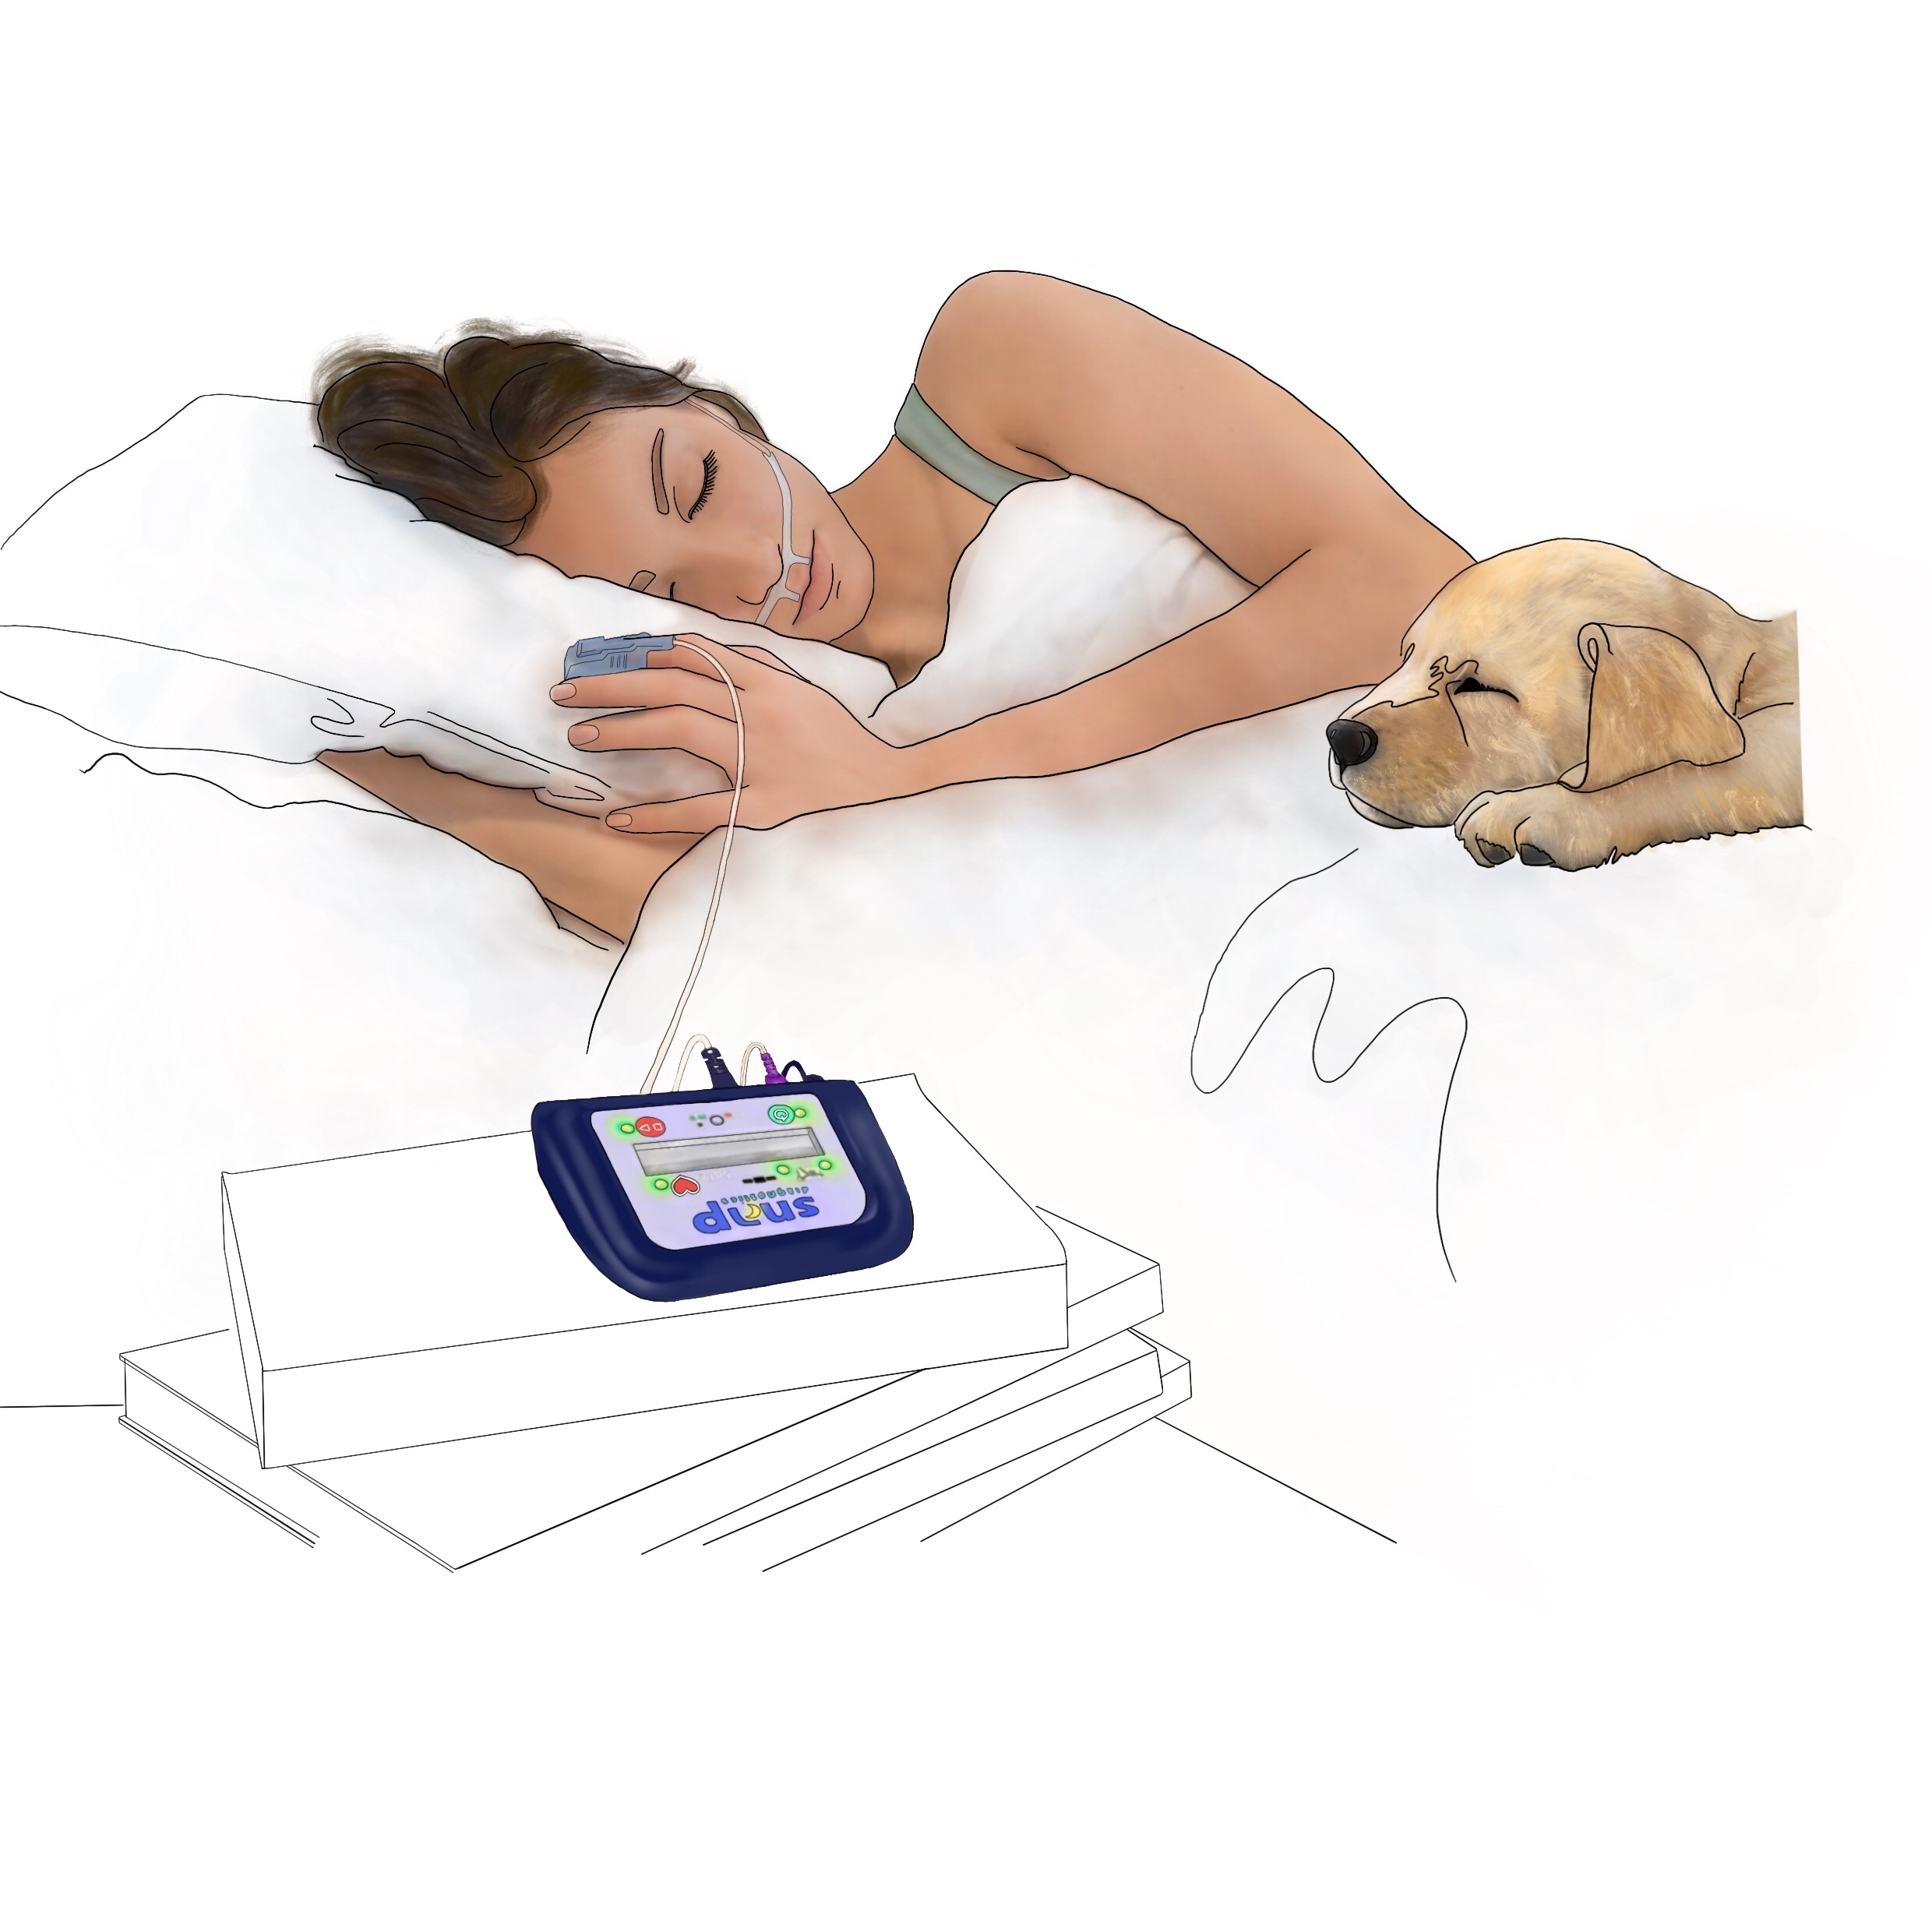 A drawing of a person sleeping at home with a Snap Diagnostics portable home sleep apnea test